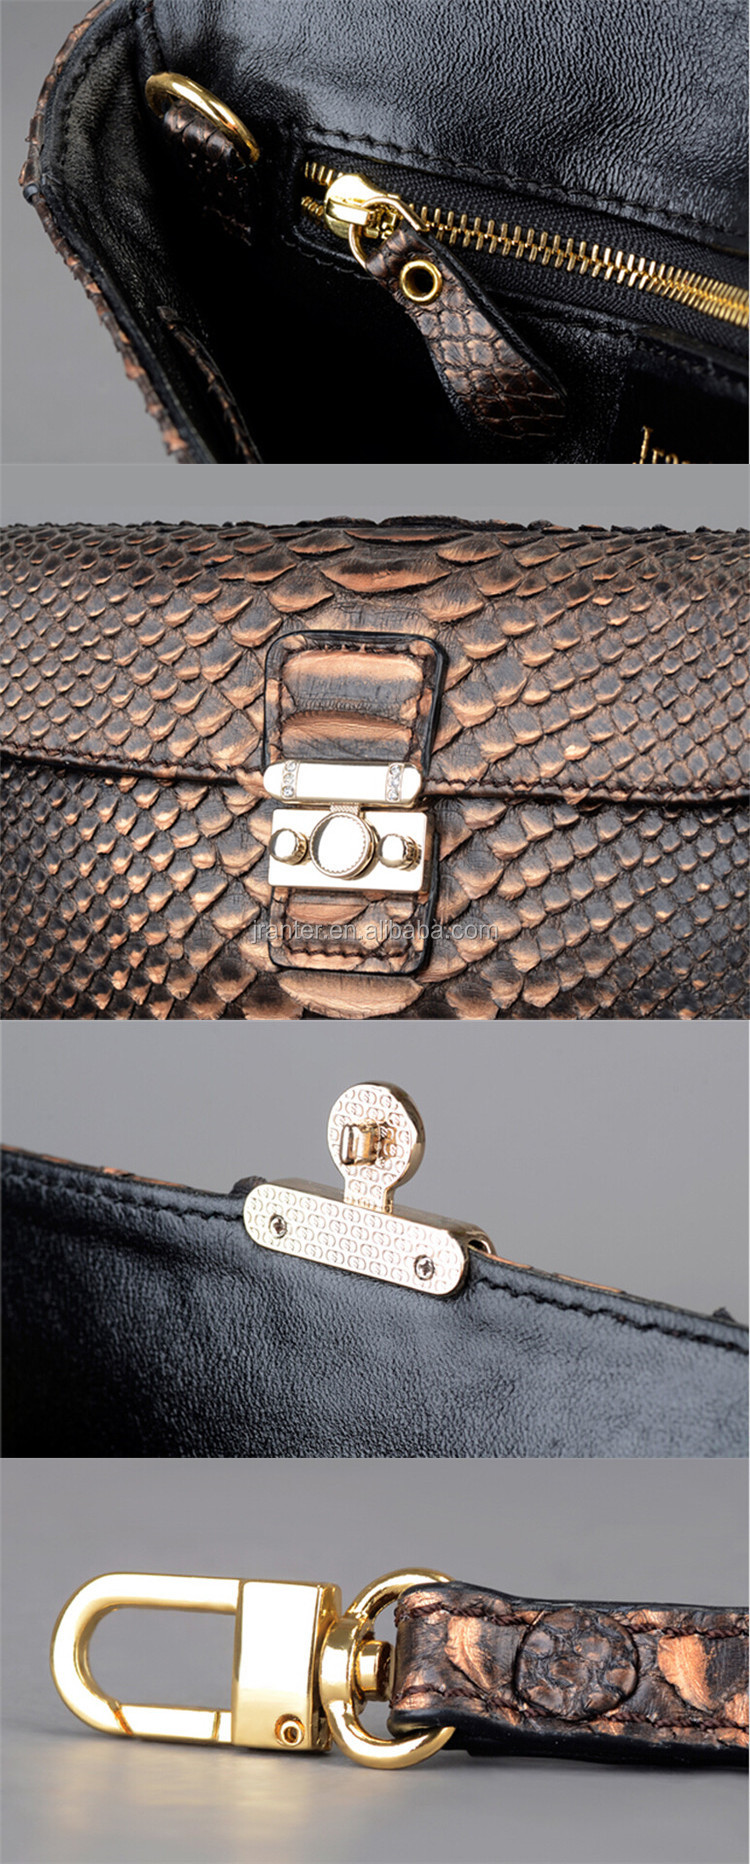 new fashion python snake skin women's clutch bag real leather clutch bag 2015